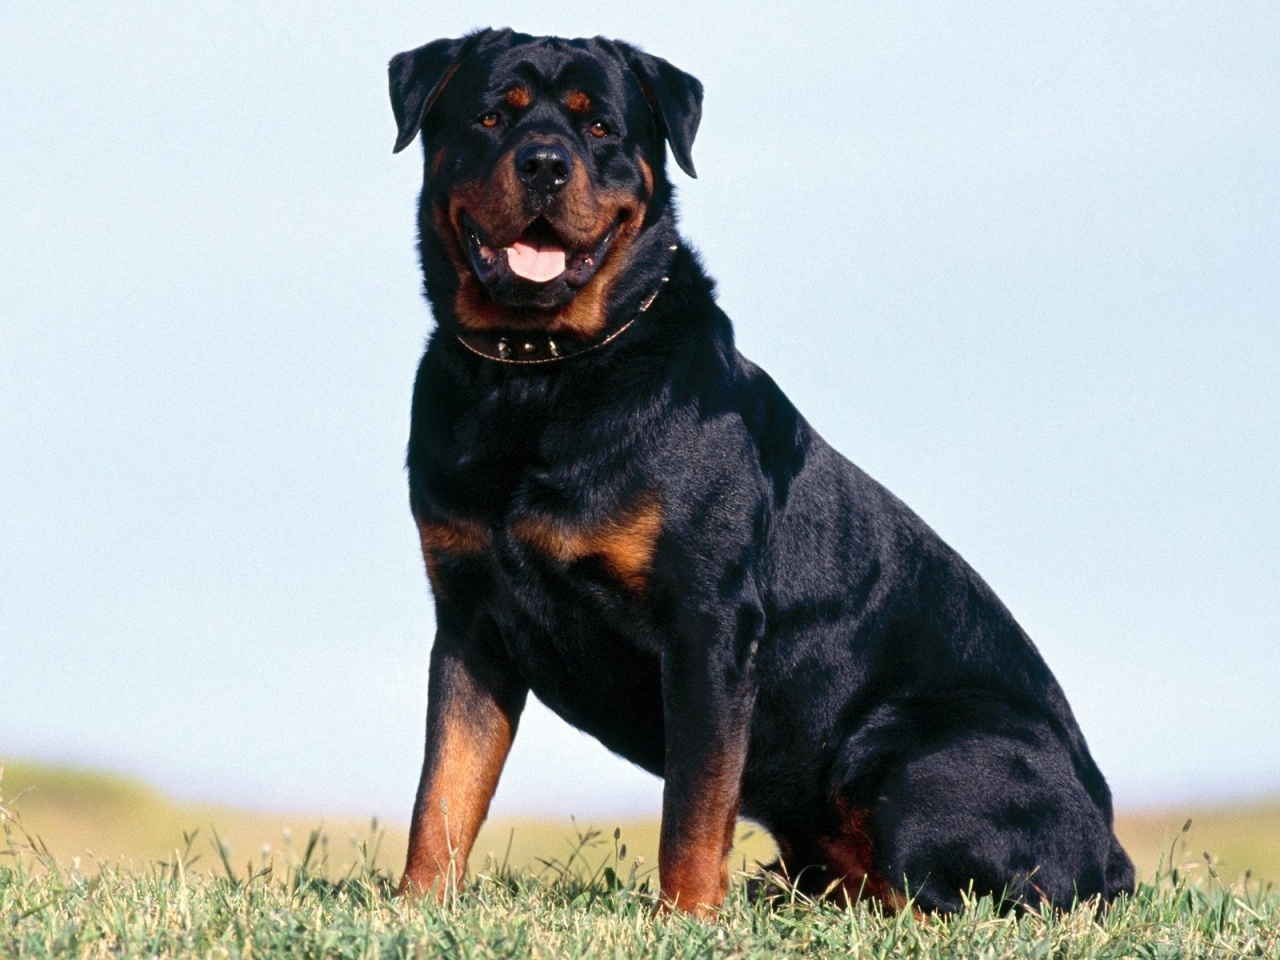 click to free download the wallpaper--Loyal Rottweiler Rottweiler 1280X960 free wallpaper download